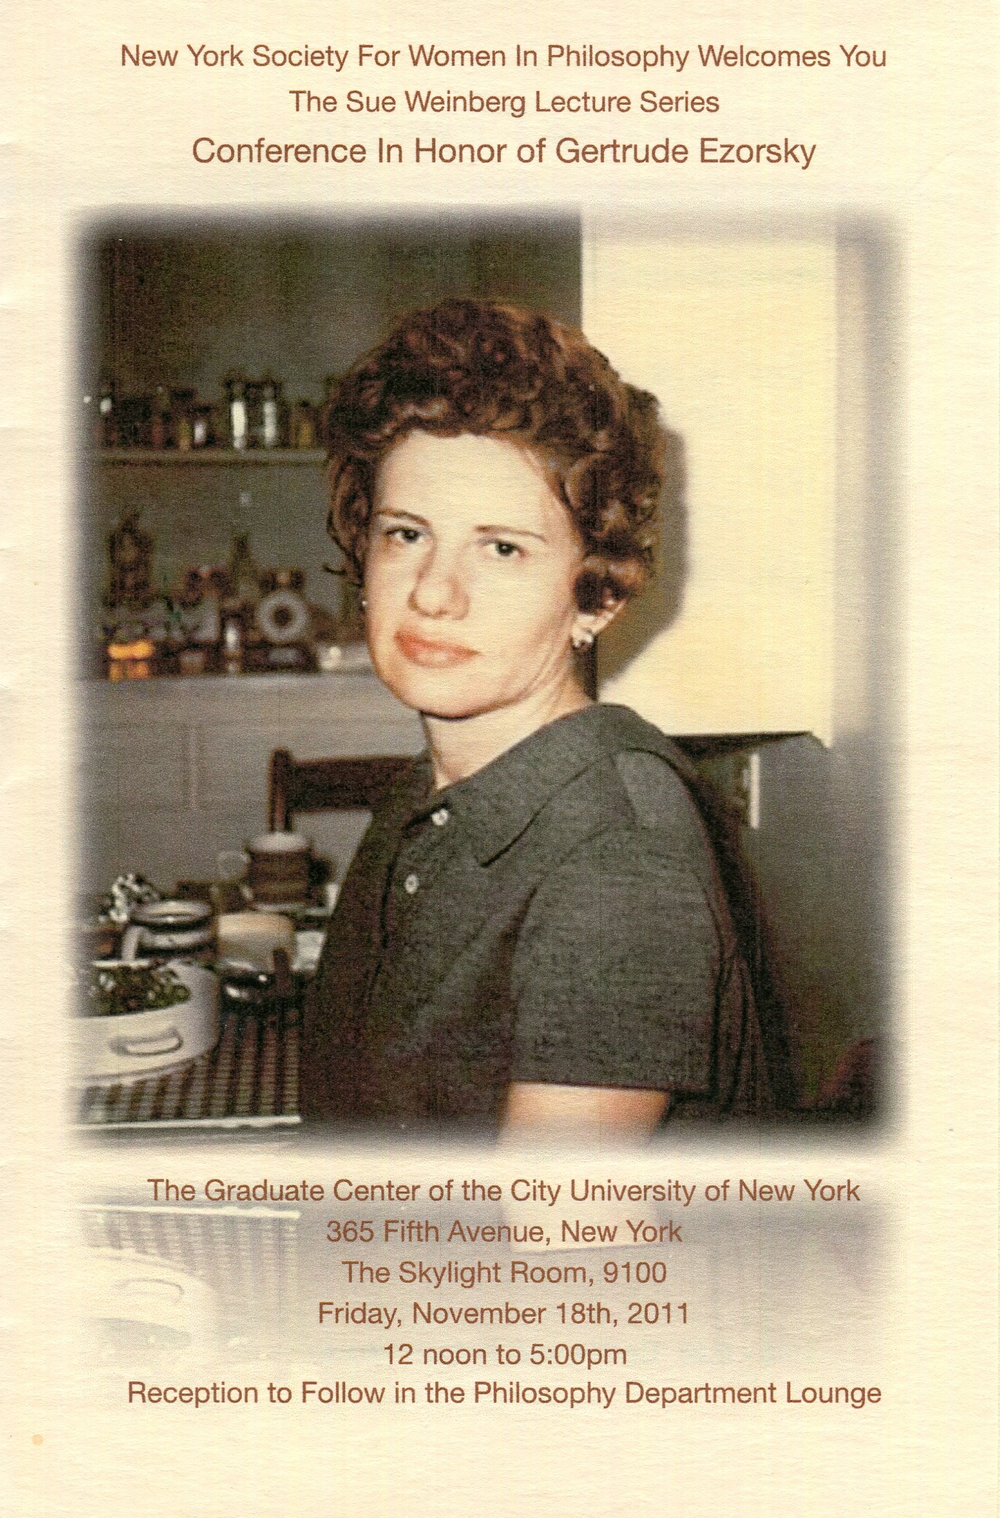 Program cover for The Sue Weinberg Lecture Series: Conference in Honor of Gertrude Ezorsky, November 2011. Society for Women in Philosophy Collection, Feminist Theory Archive, Brown University